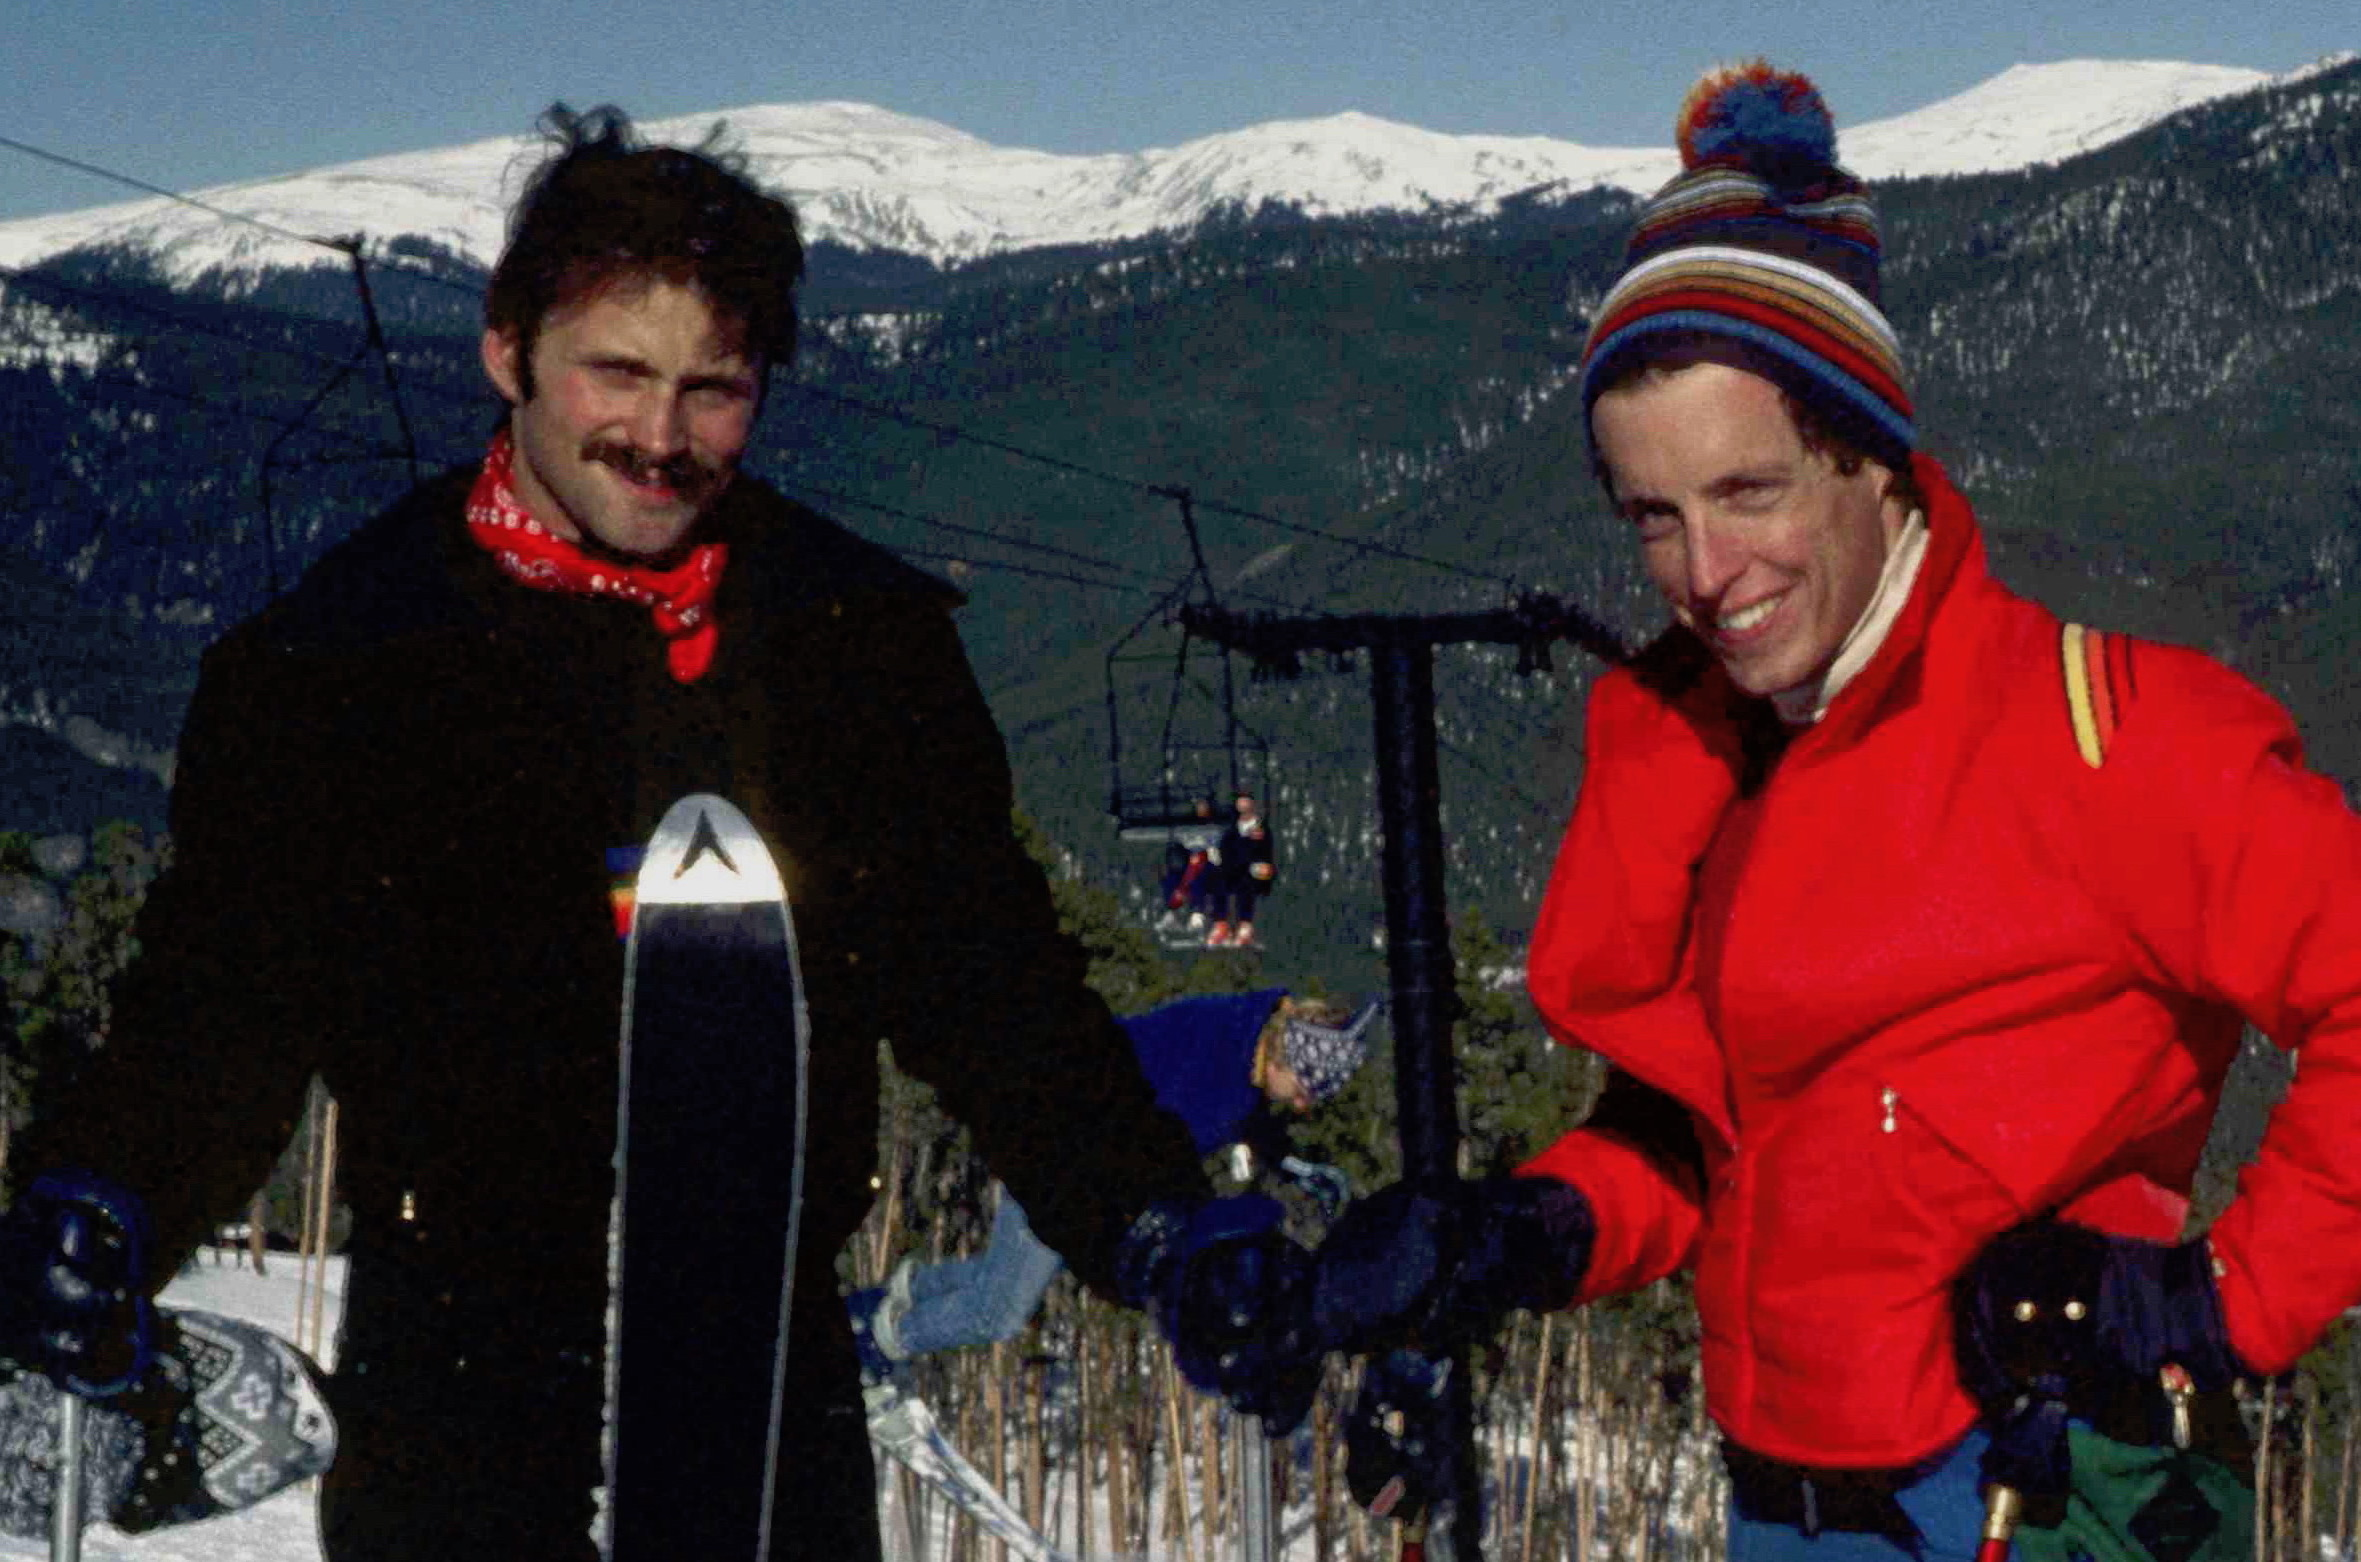 Terry Tebedo and Mike Anglin skiing in Colorado in December 1980